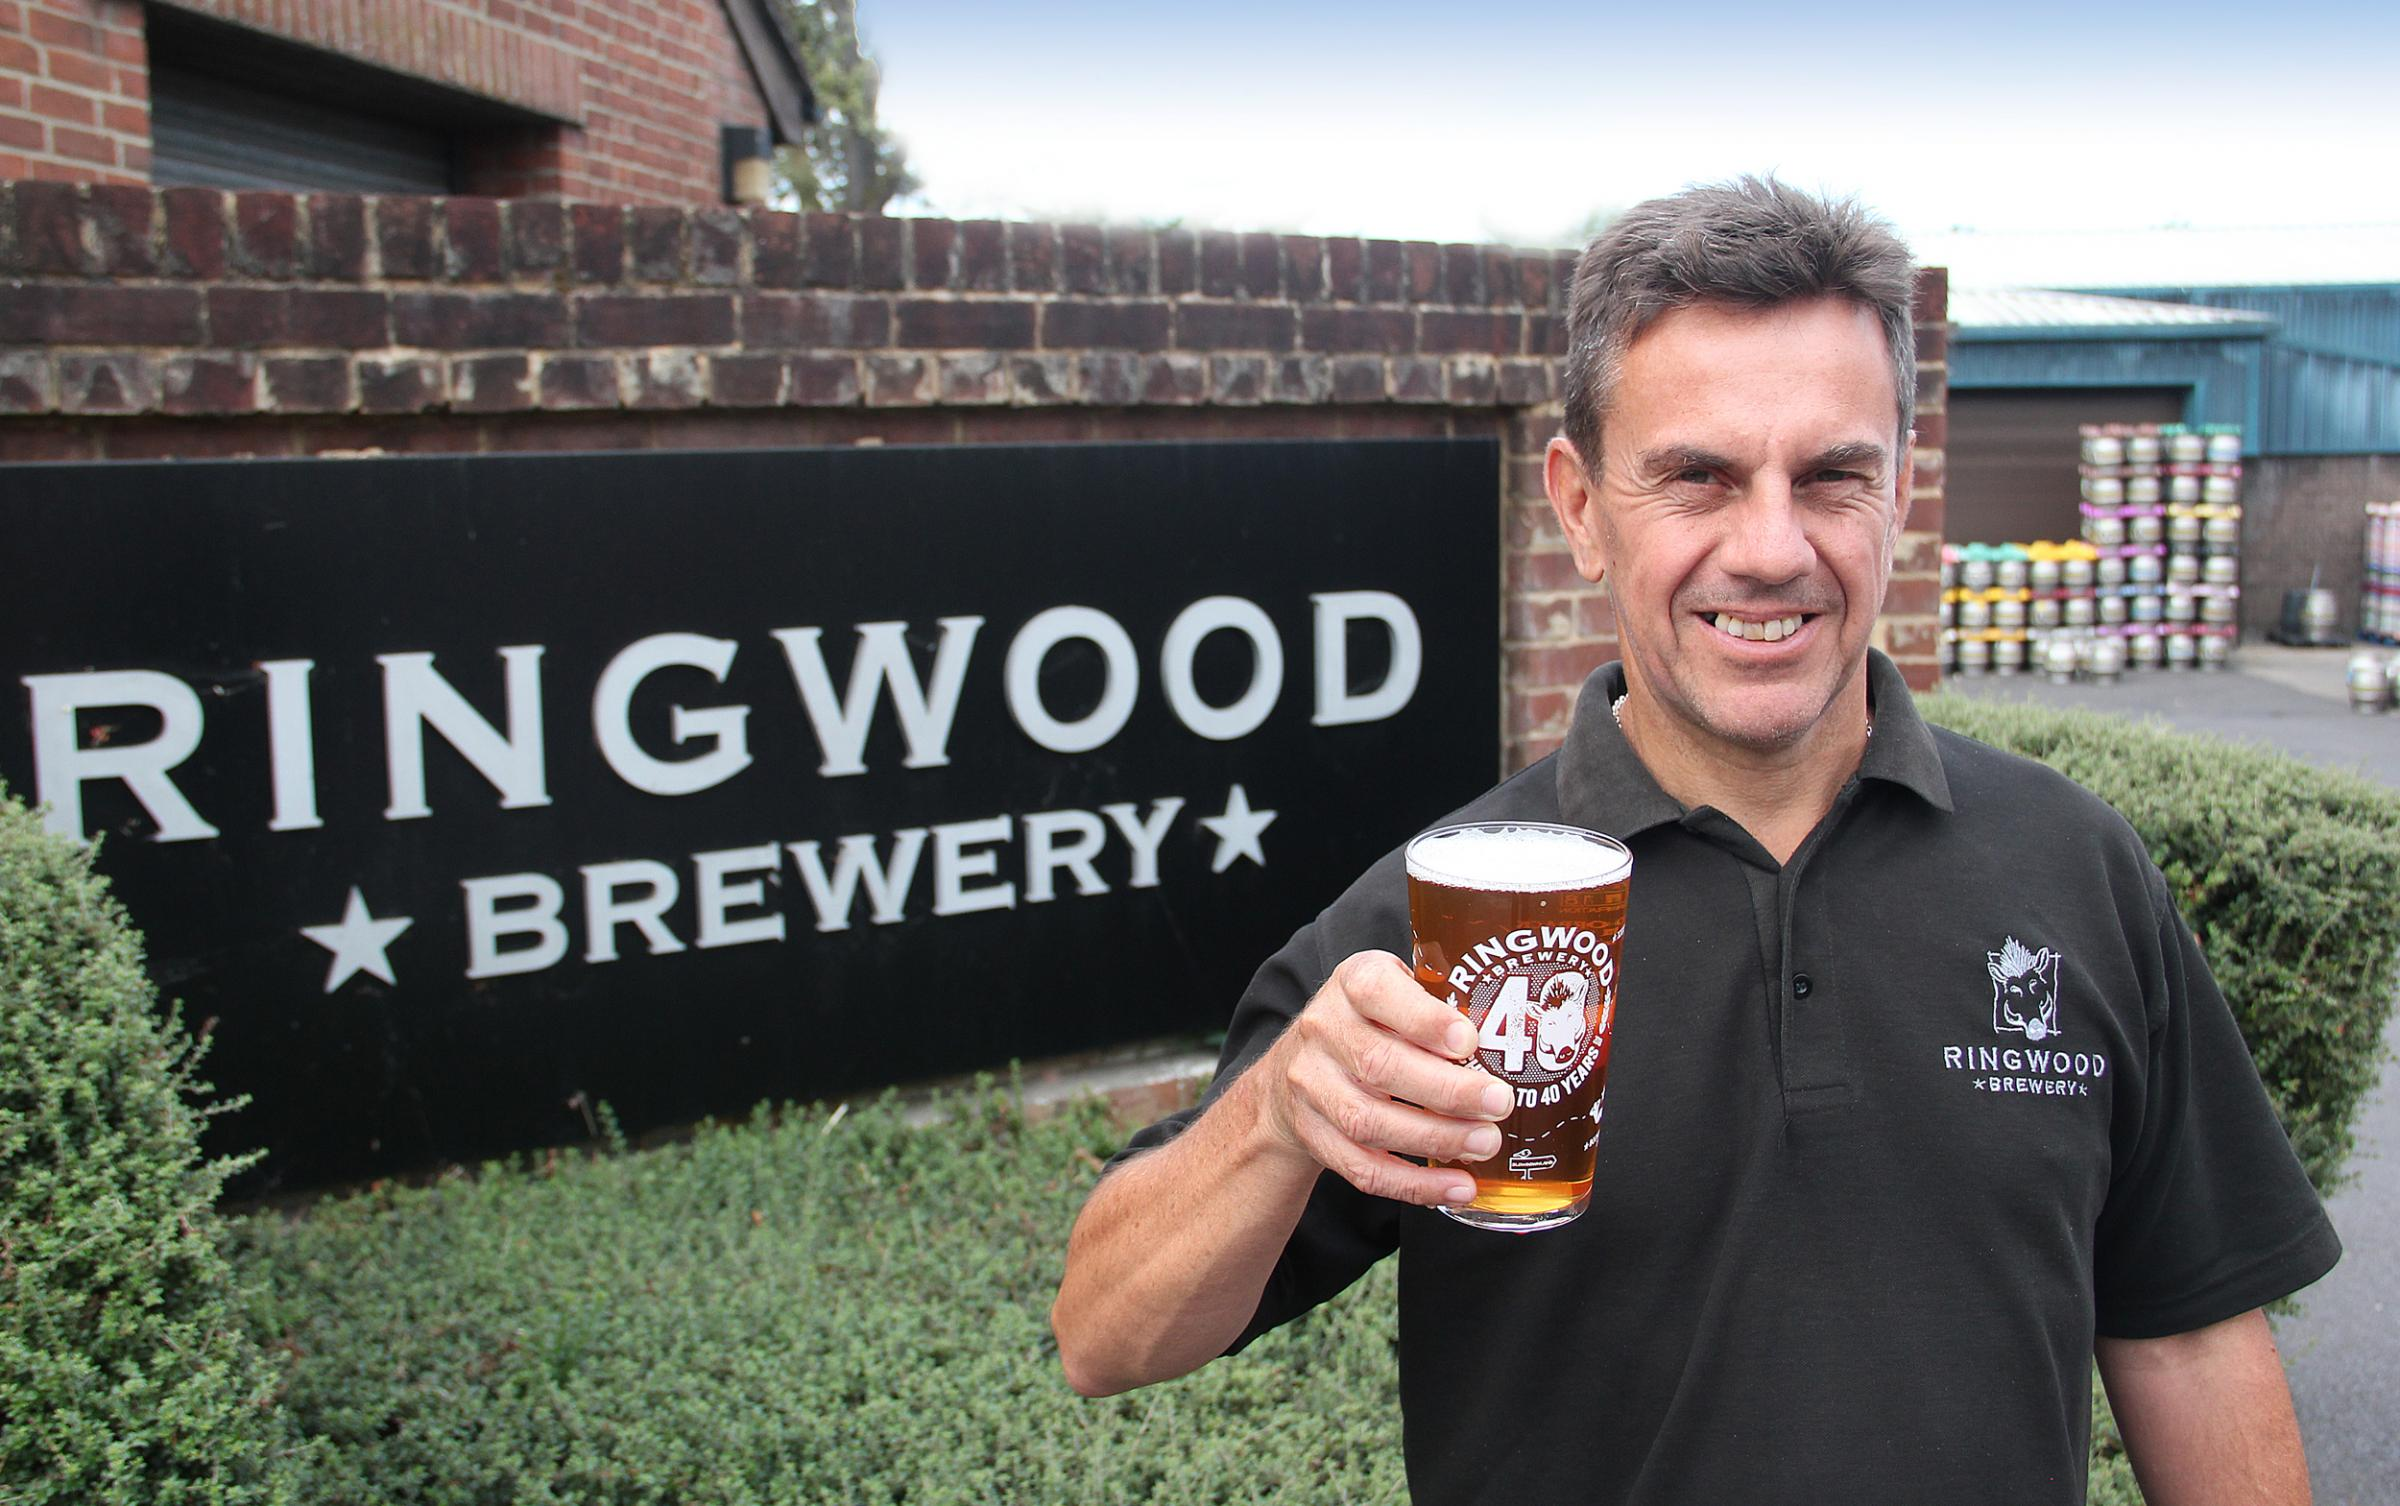 Maurice Walton, the new head brewer at Ringwood Brewery.